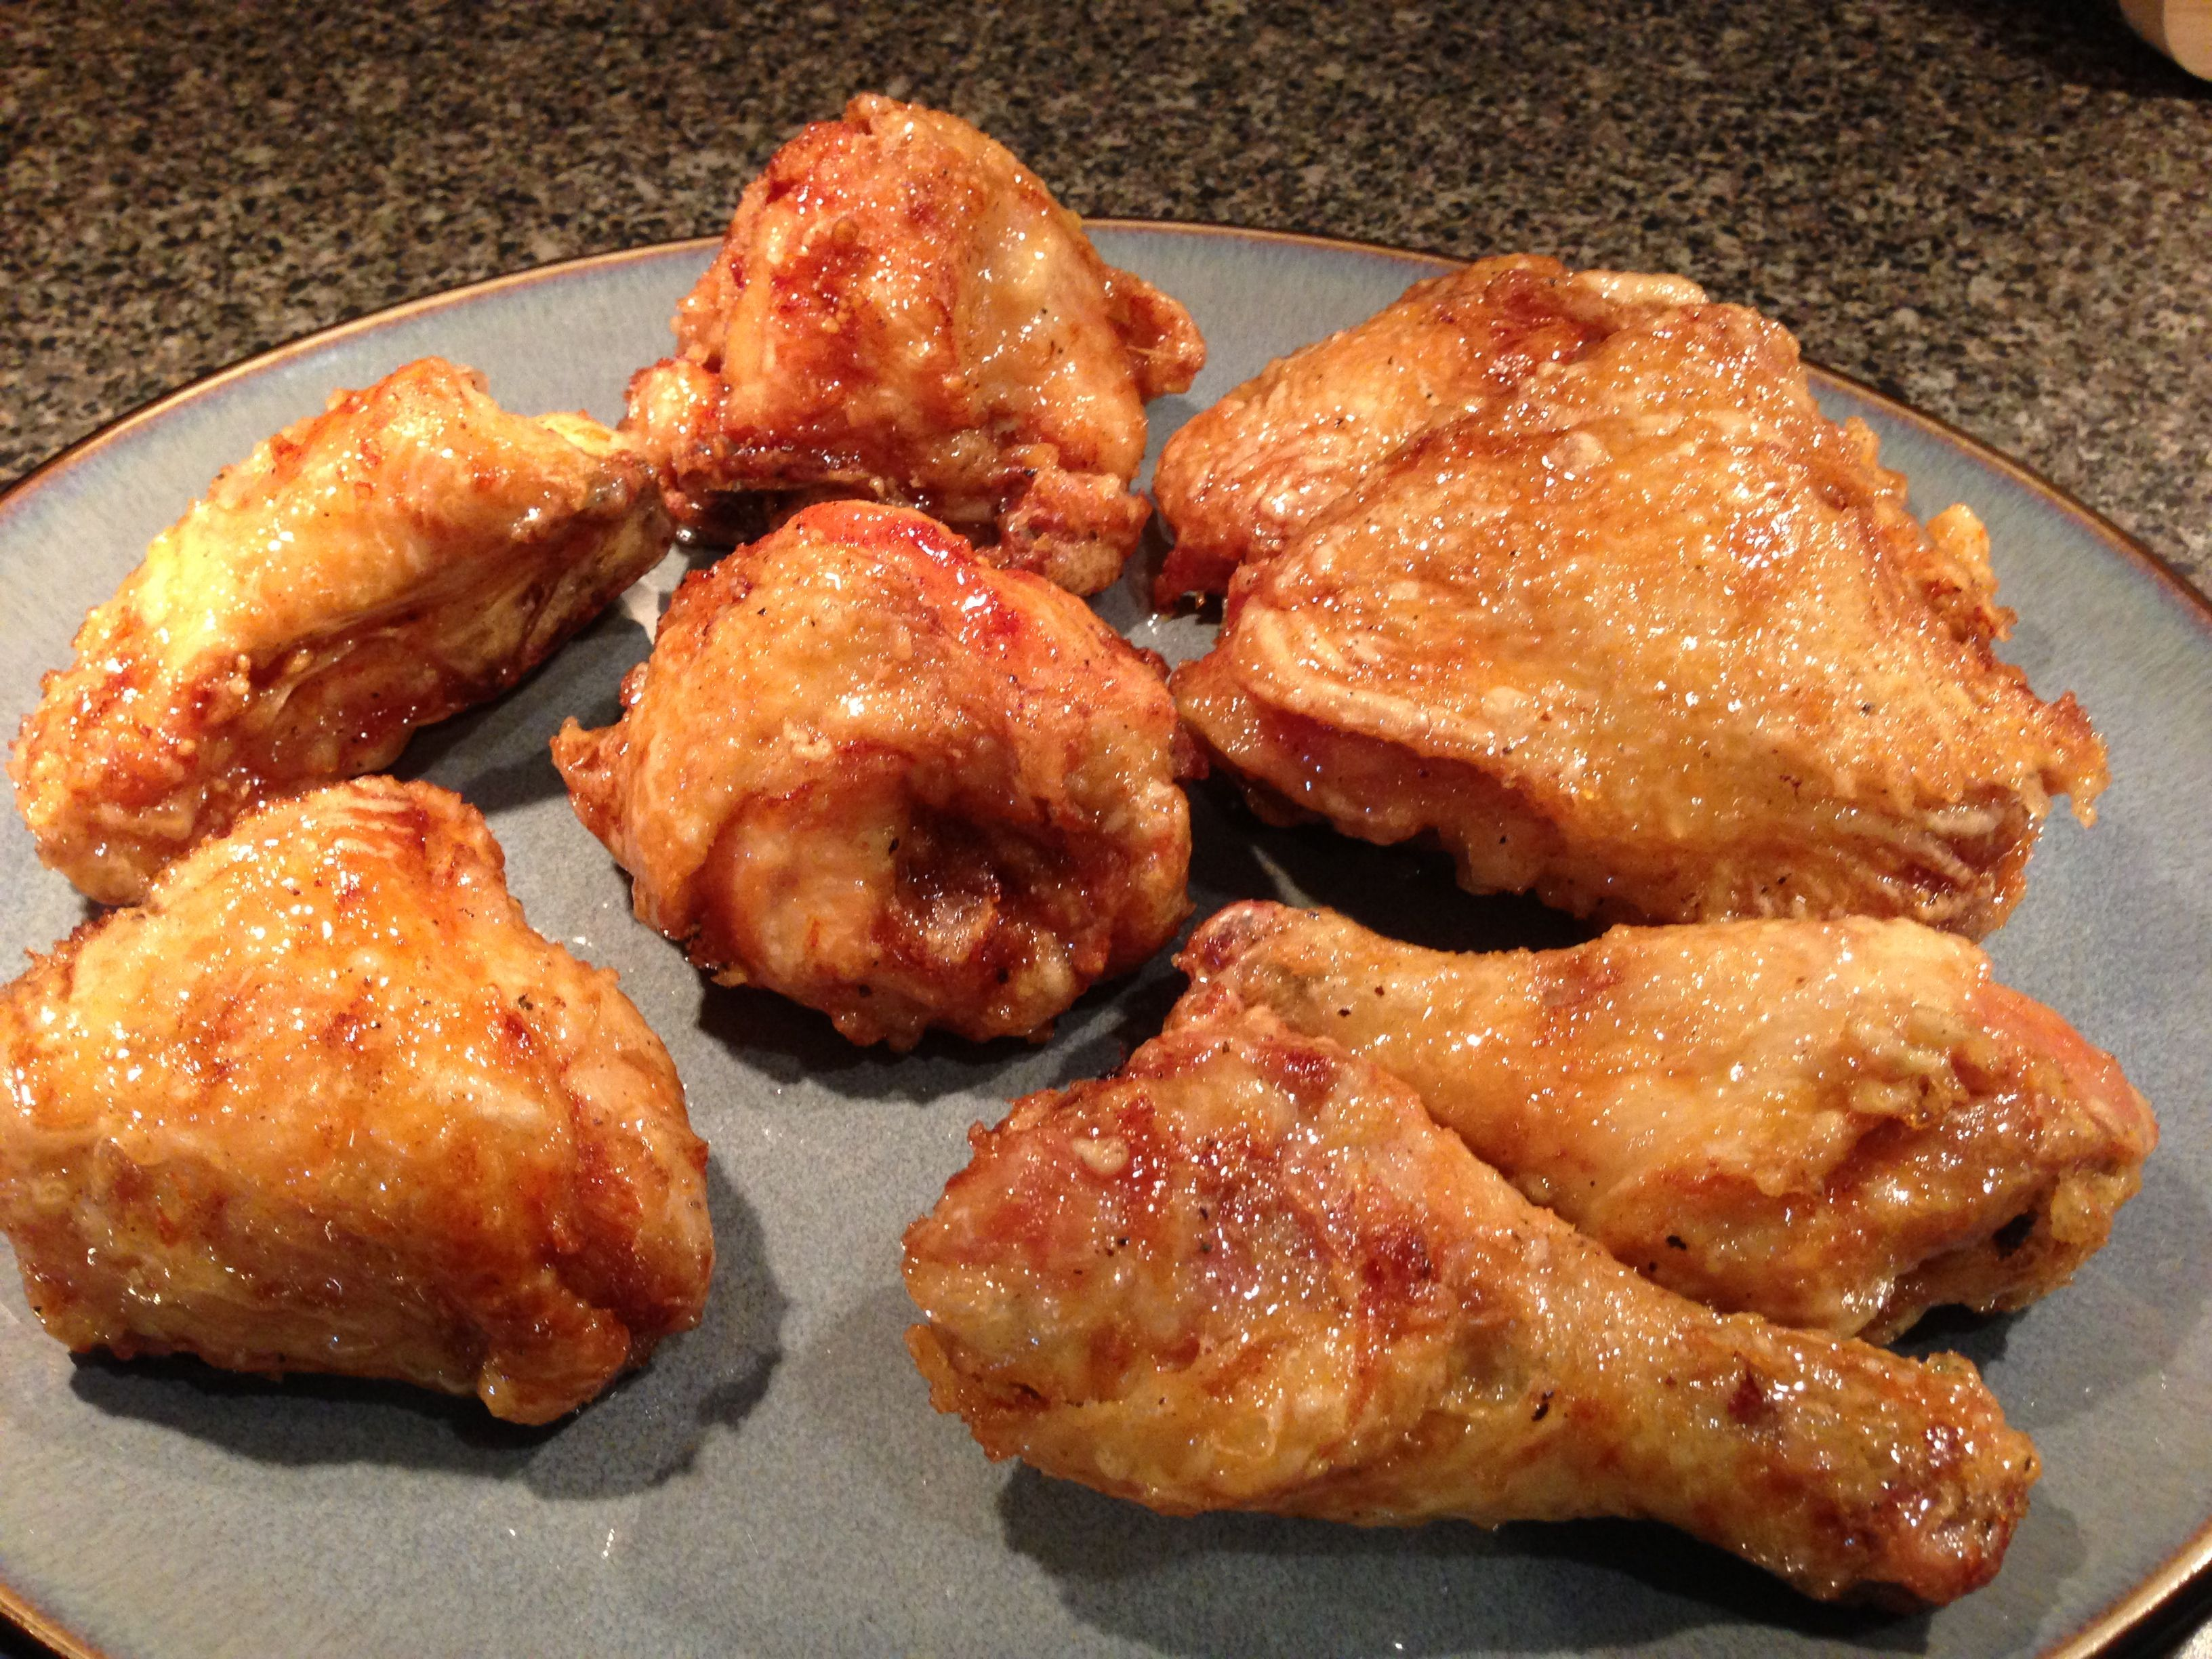 Country Cooks Test Kitchen Honey Dipped Fried Chicken From Cooks Country Incredible Erica